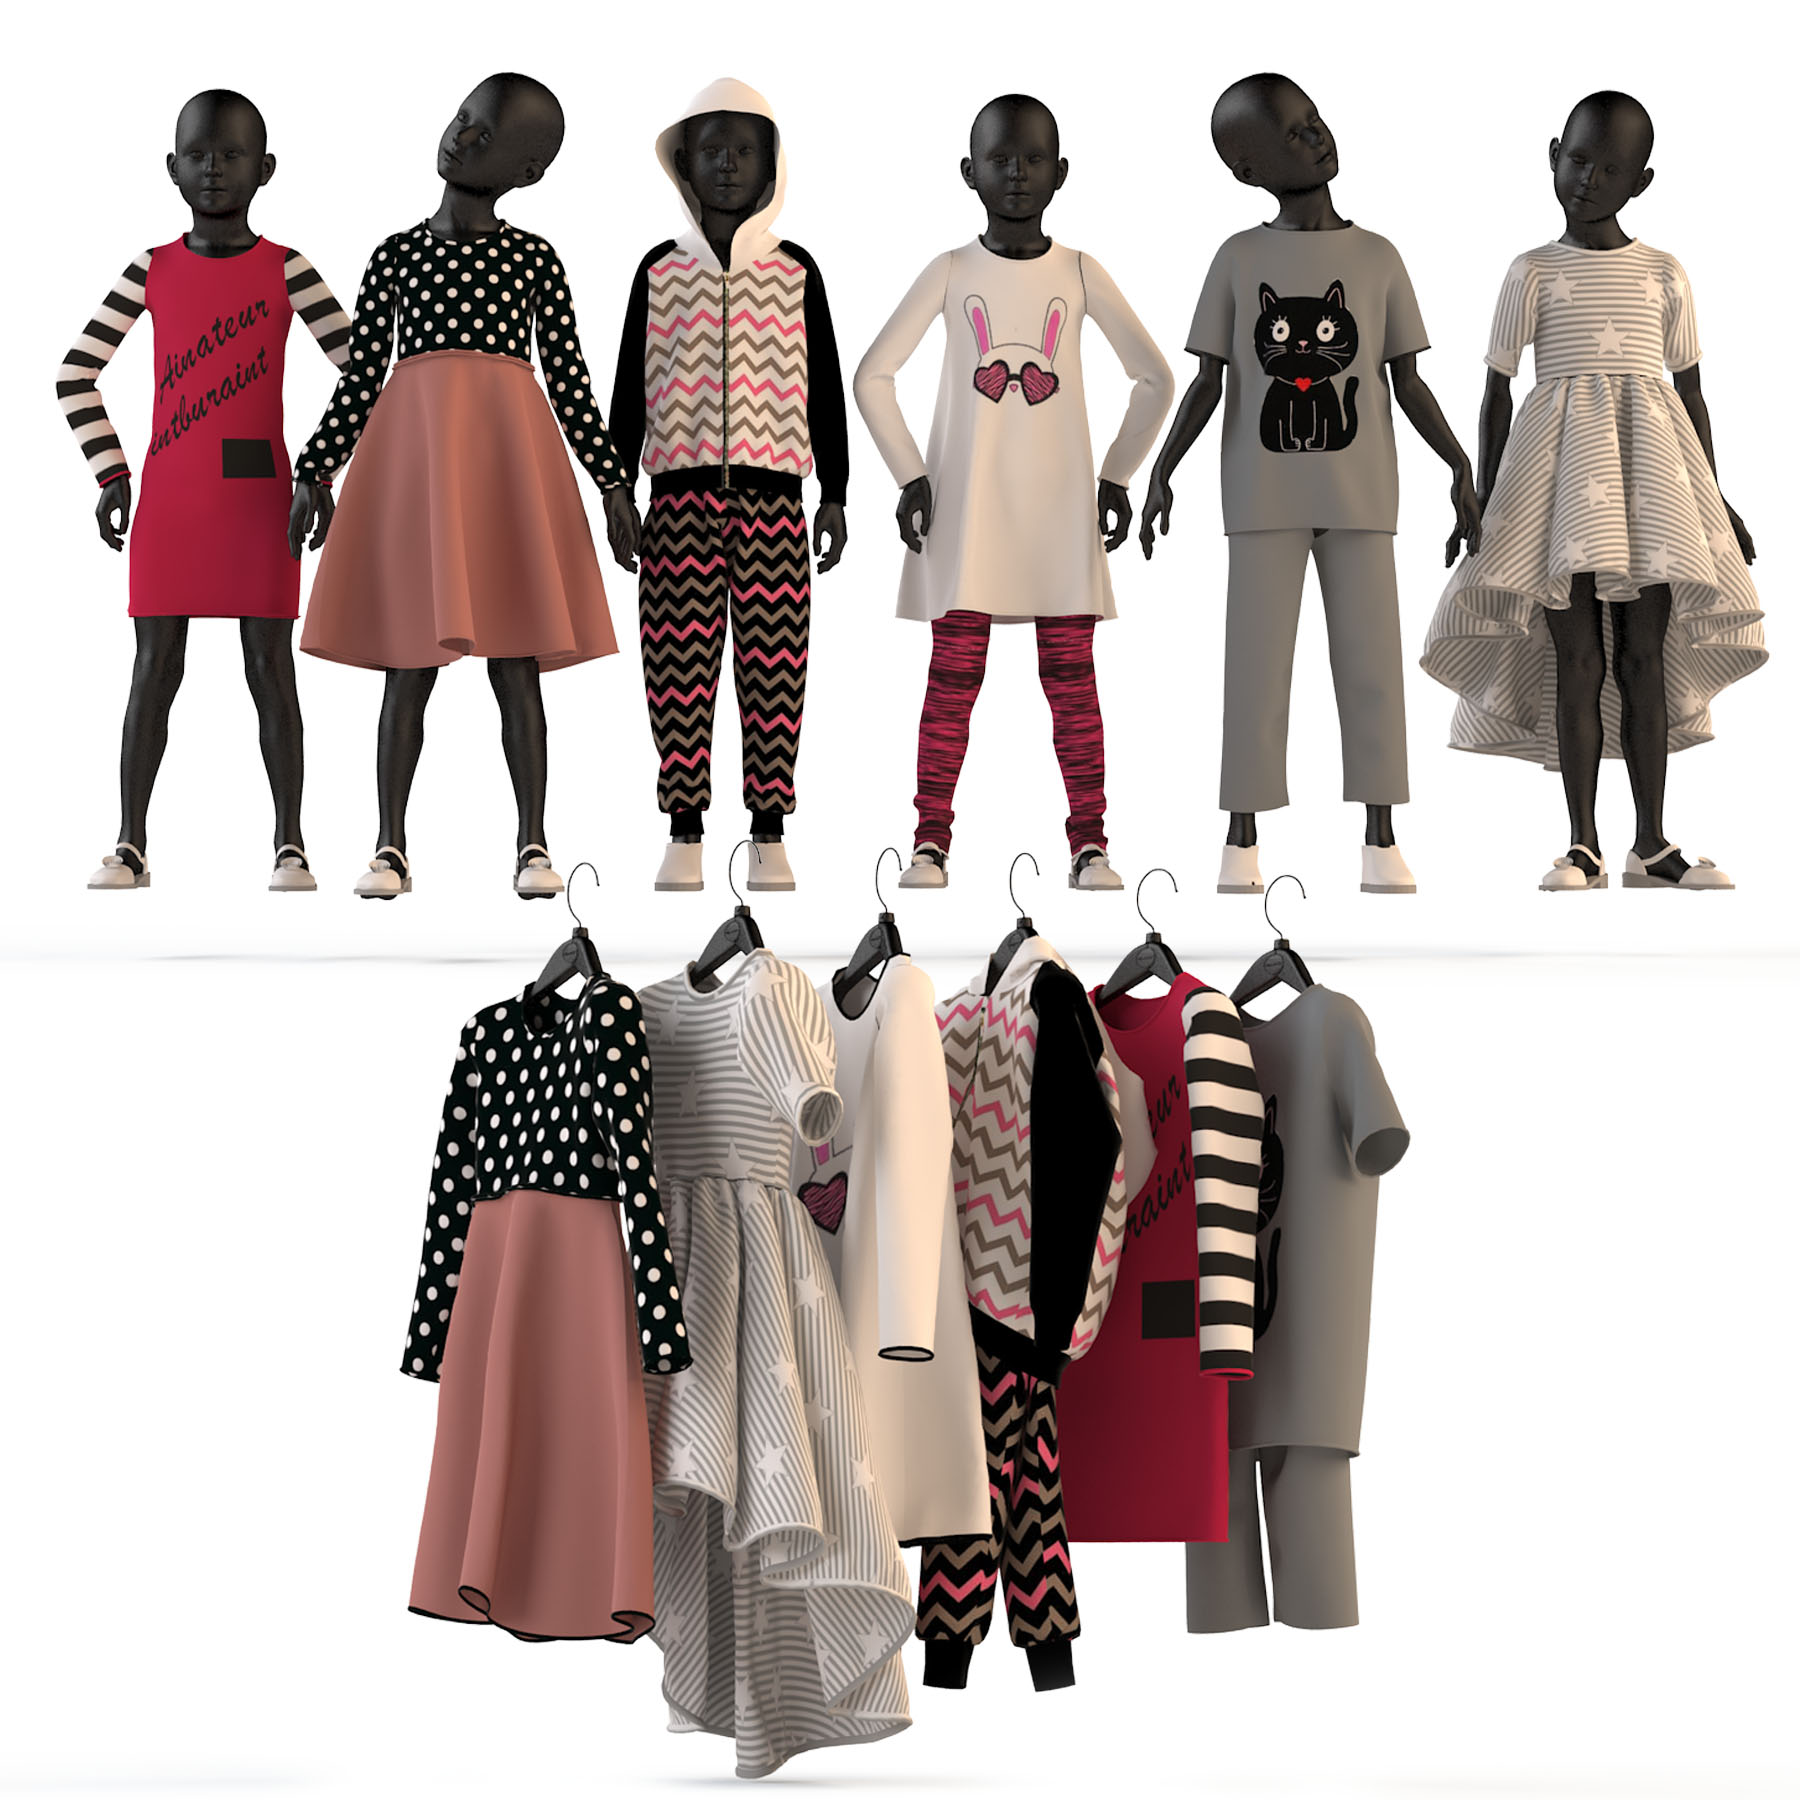 Children's clothing on mannequins and hangers set